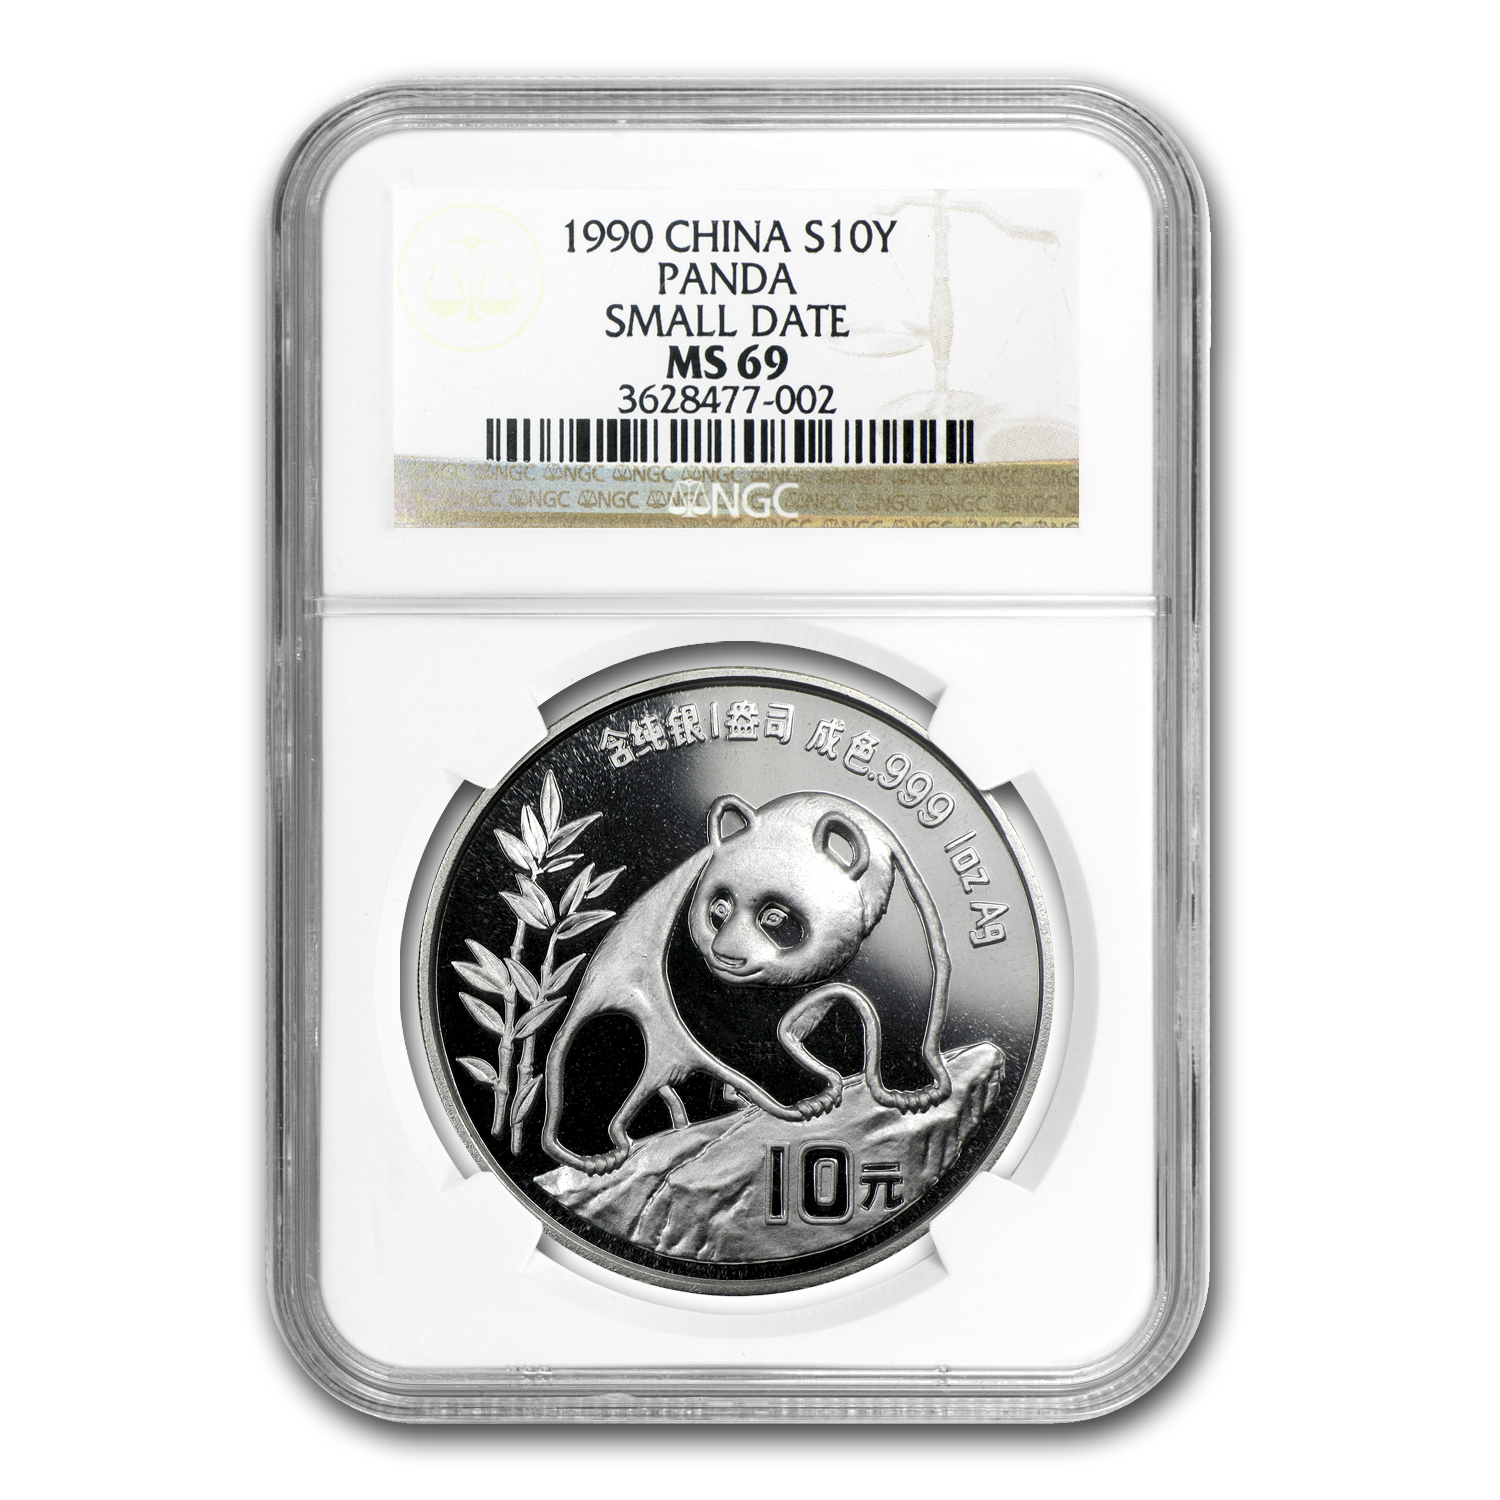 1990 China 1 oz Silver Panda MS-69 NGC (Small Date)